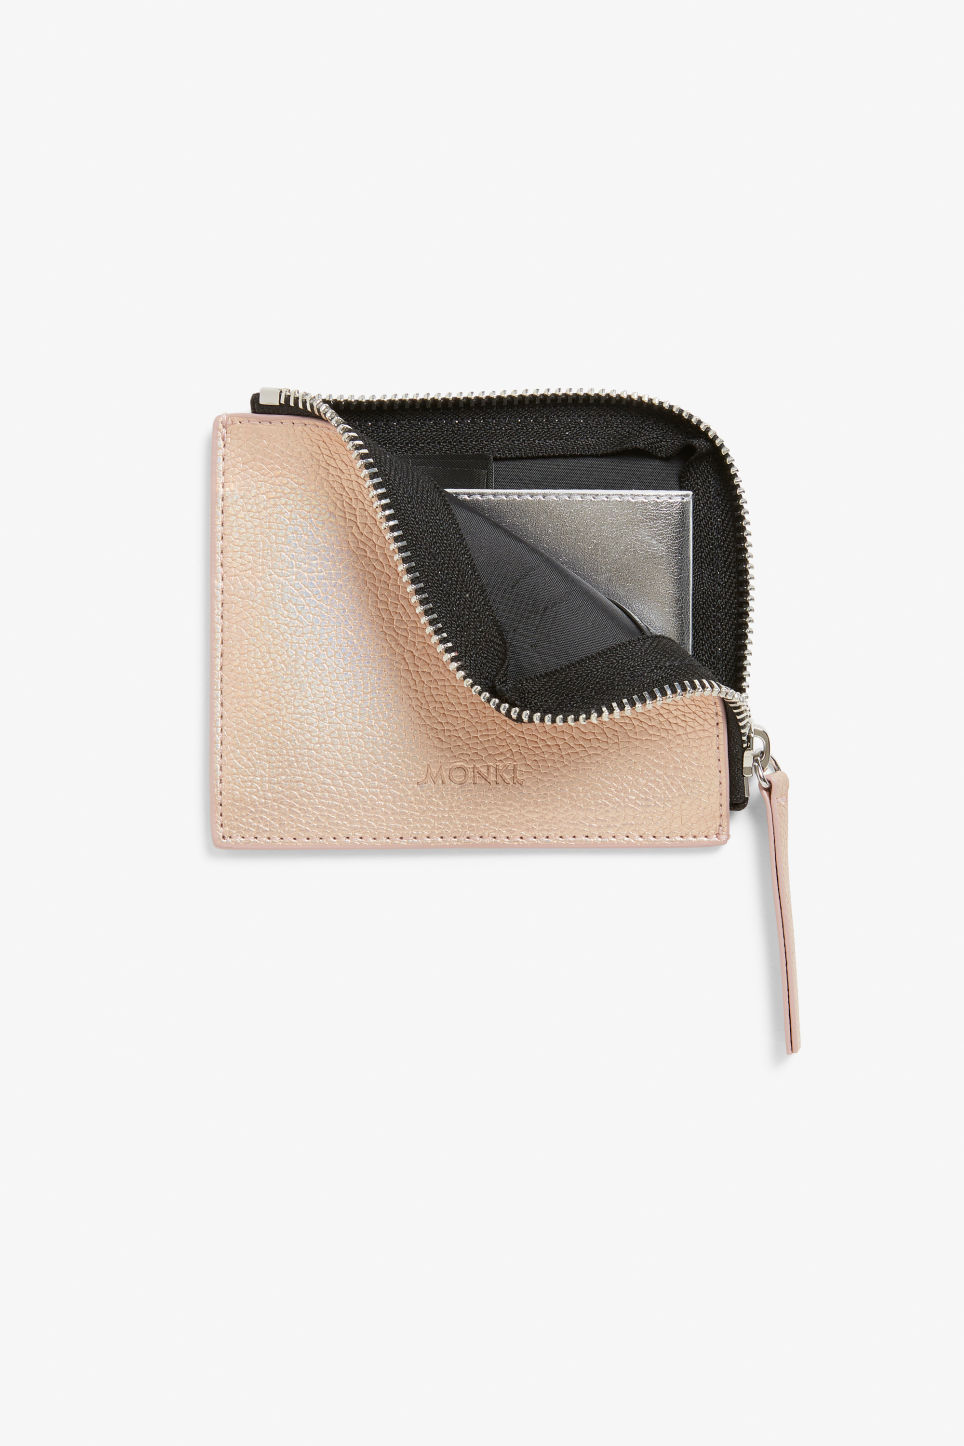 Detailed image of Monki card case in brown